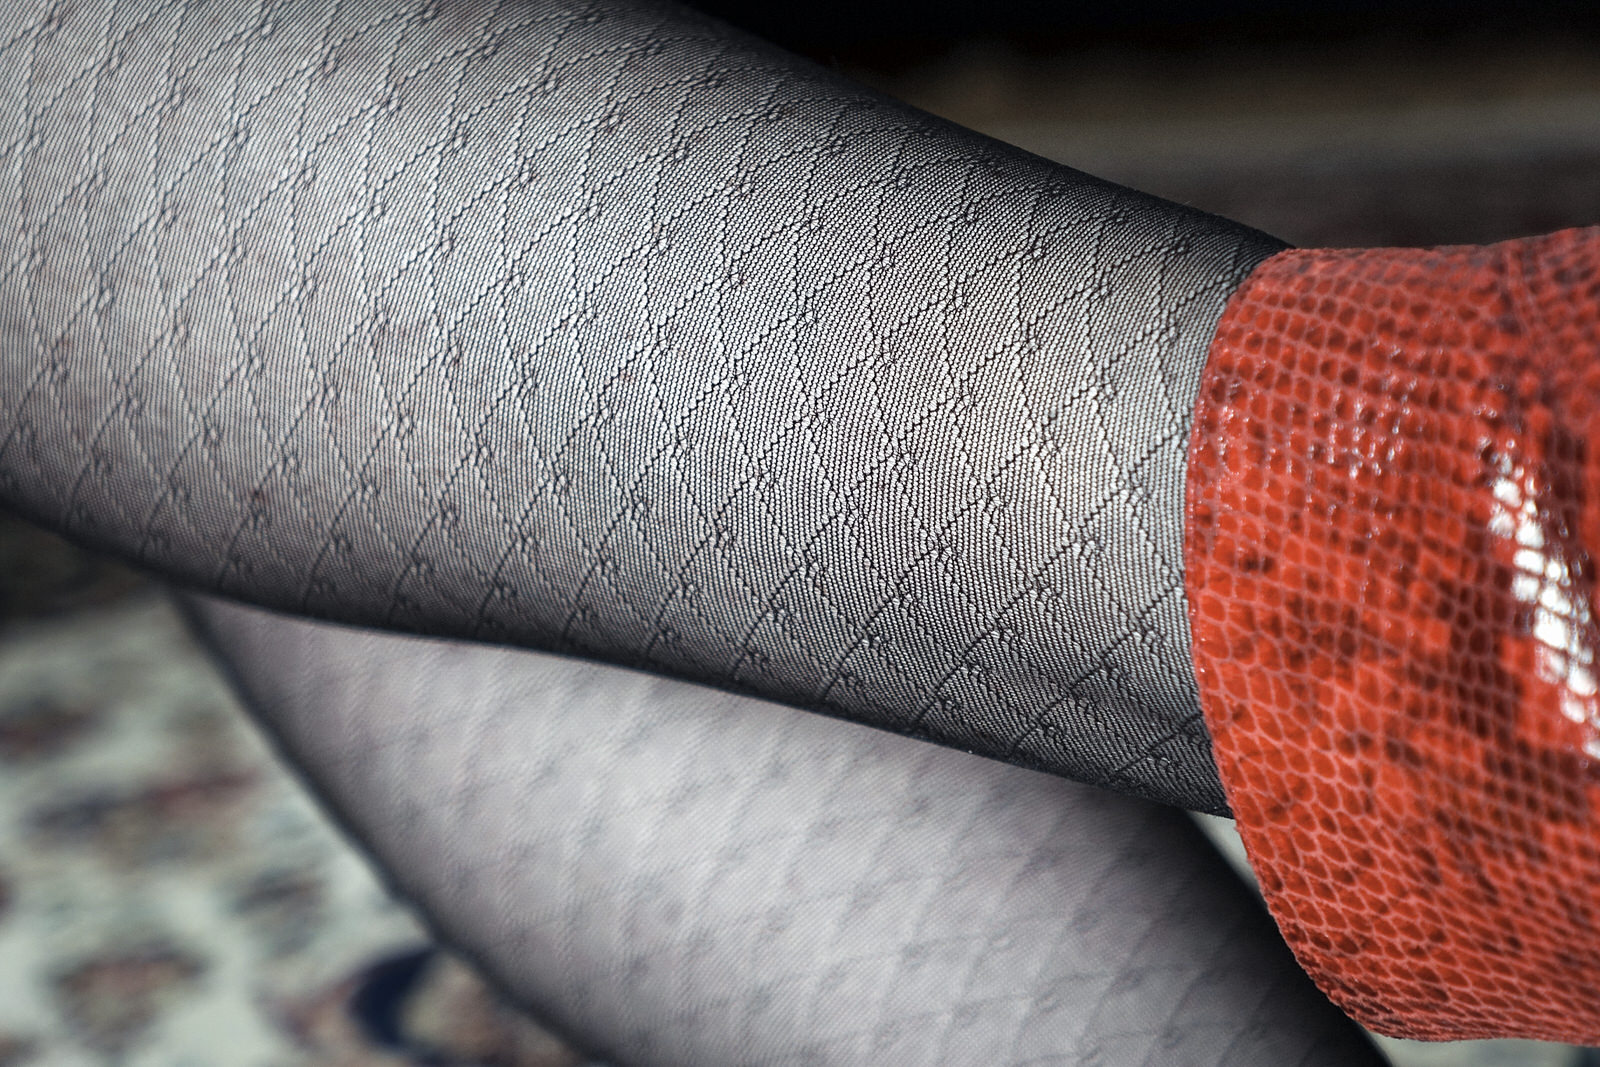 Les collants de la Gambettes Box d'octobre 2019